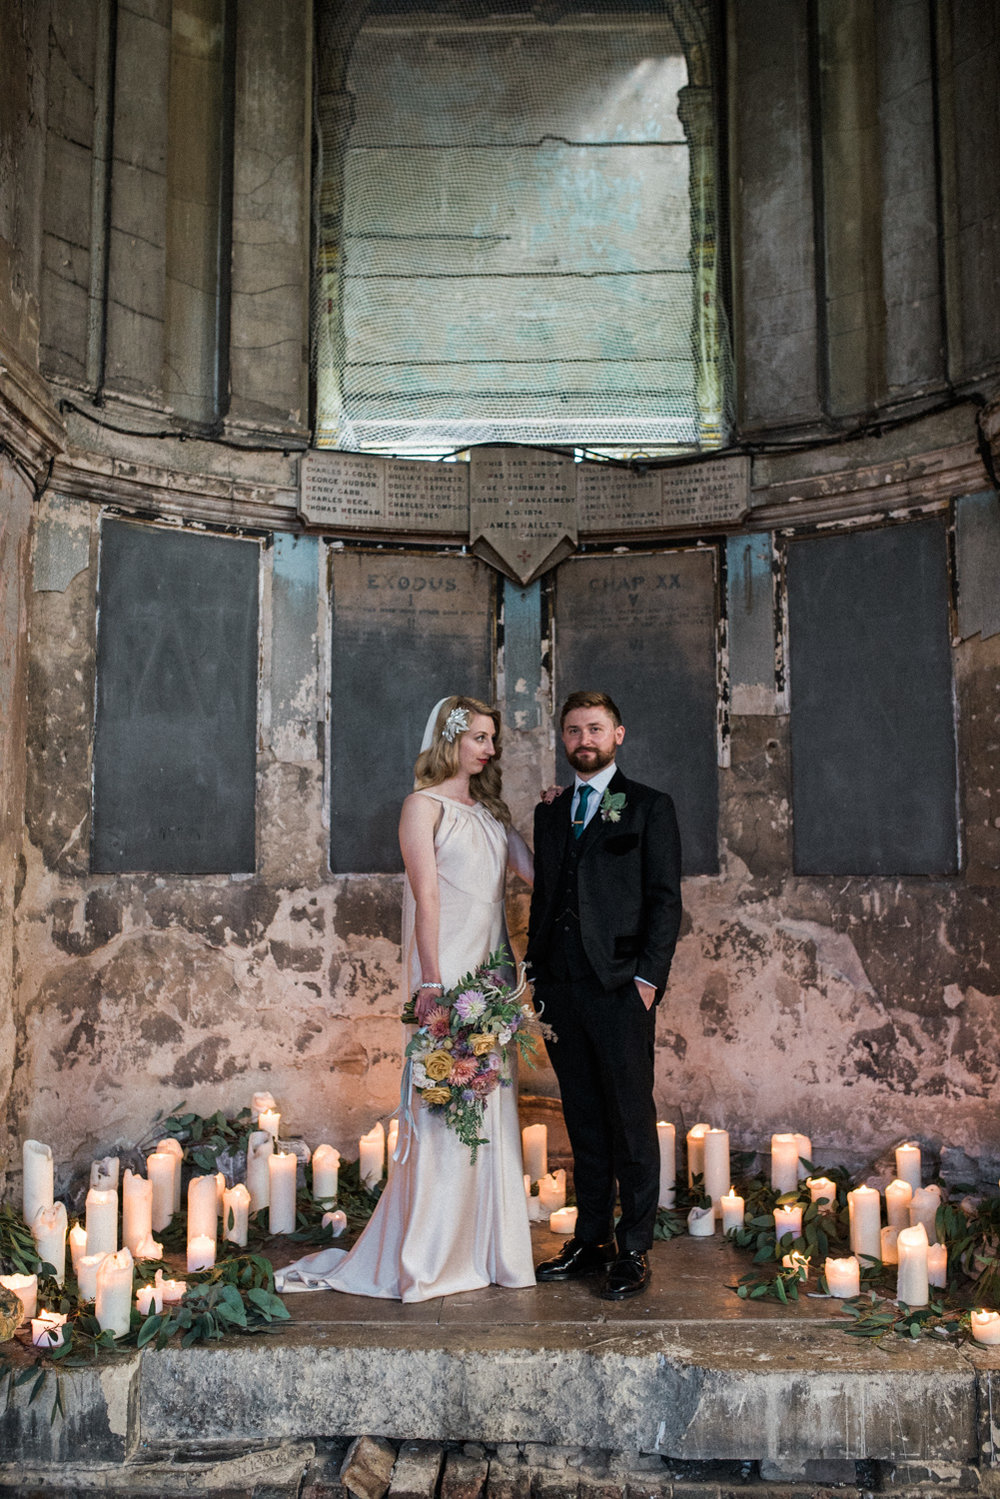 asylum-wedding-photographer-the-peasant-in-clerkenwell-wedding--74.jpg